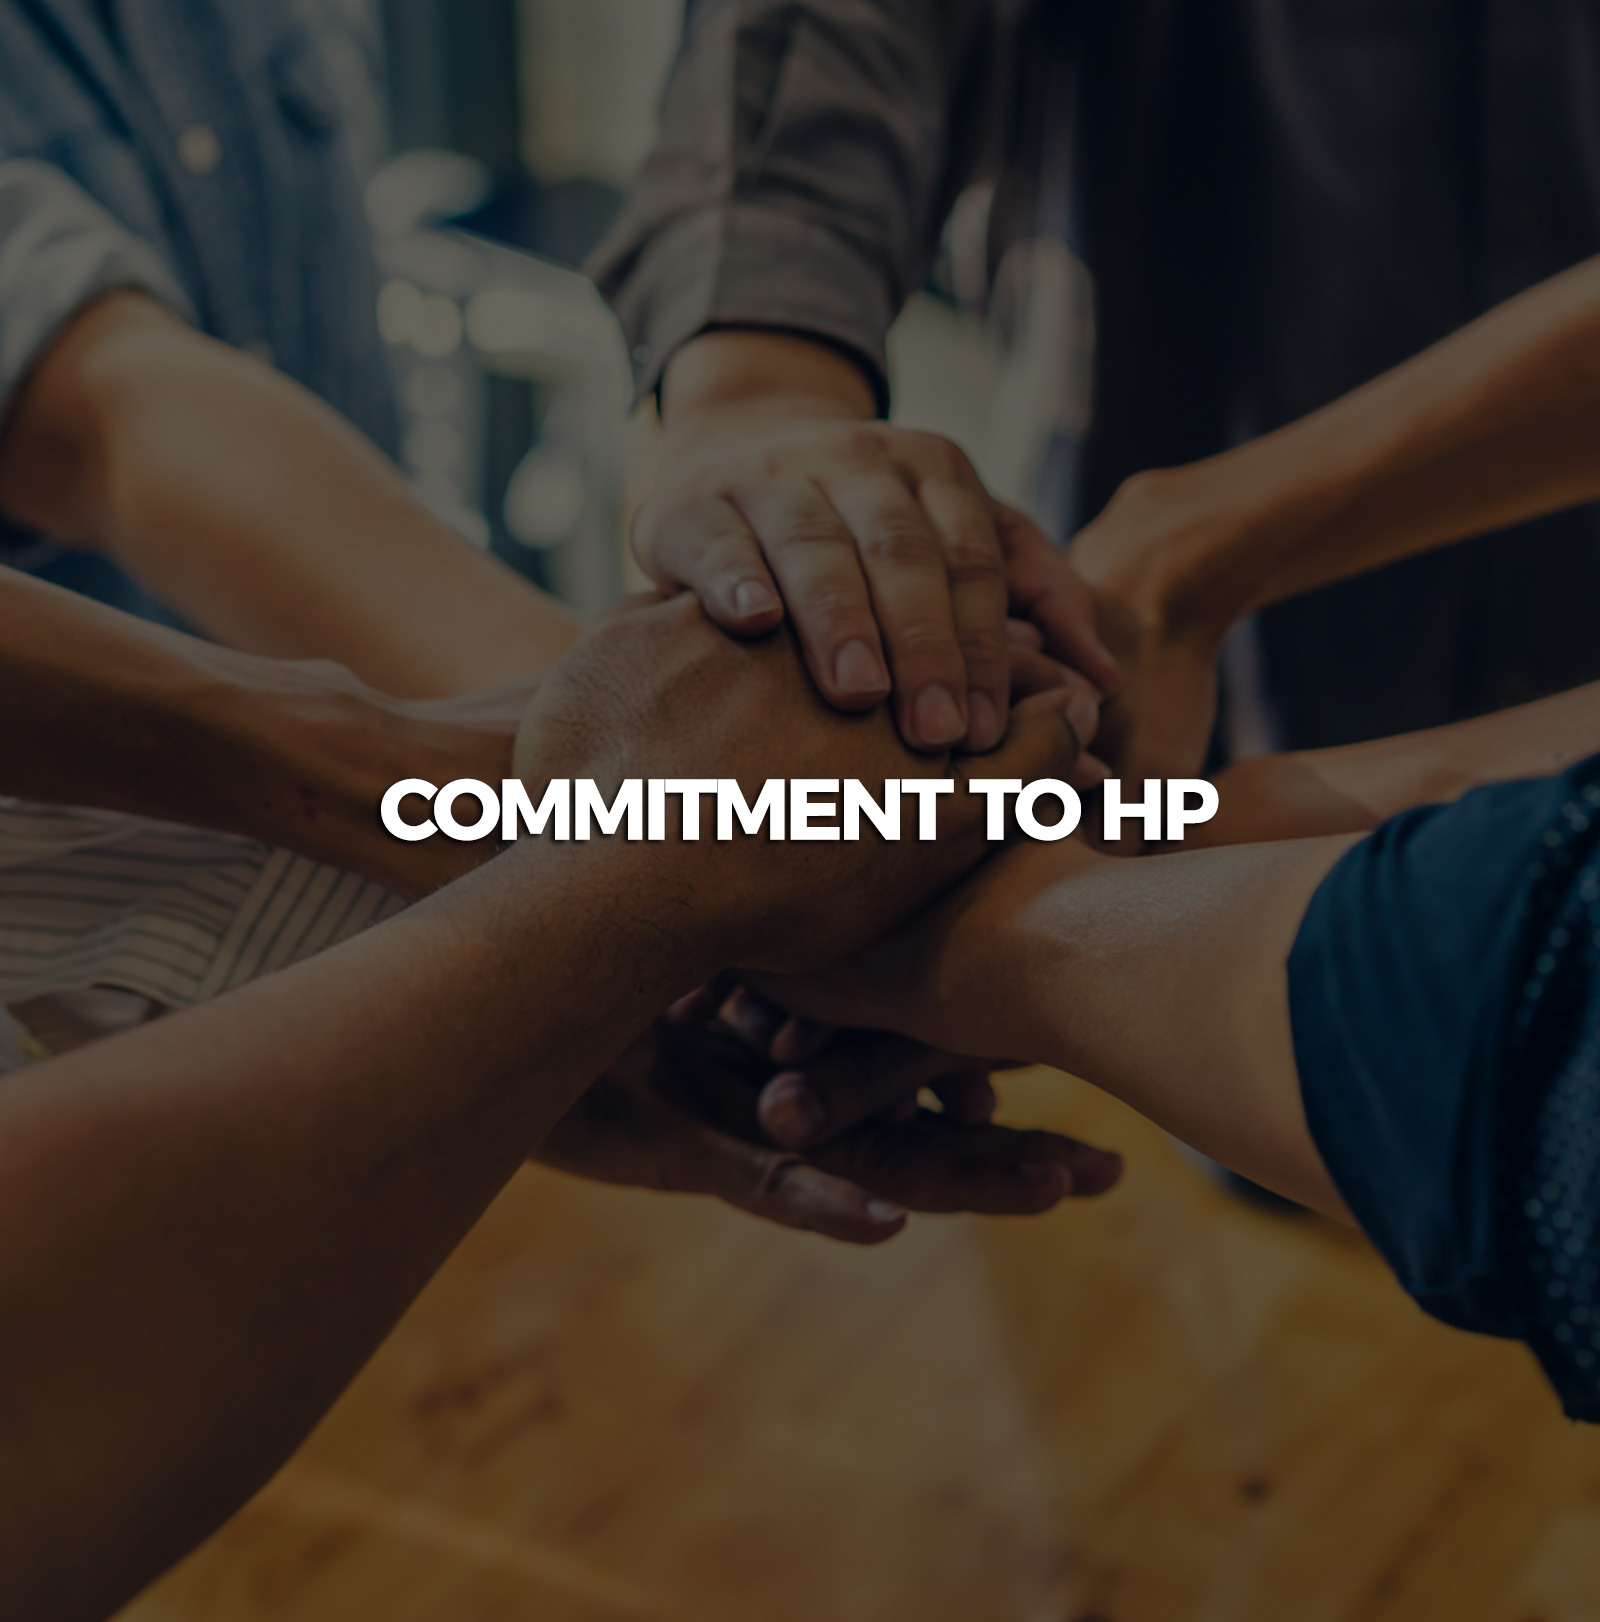 Commitment-to-HP